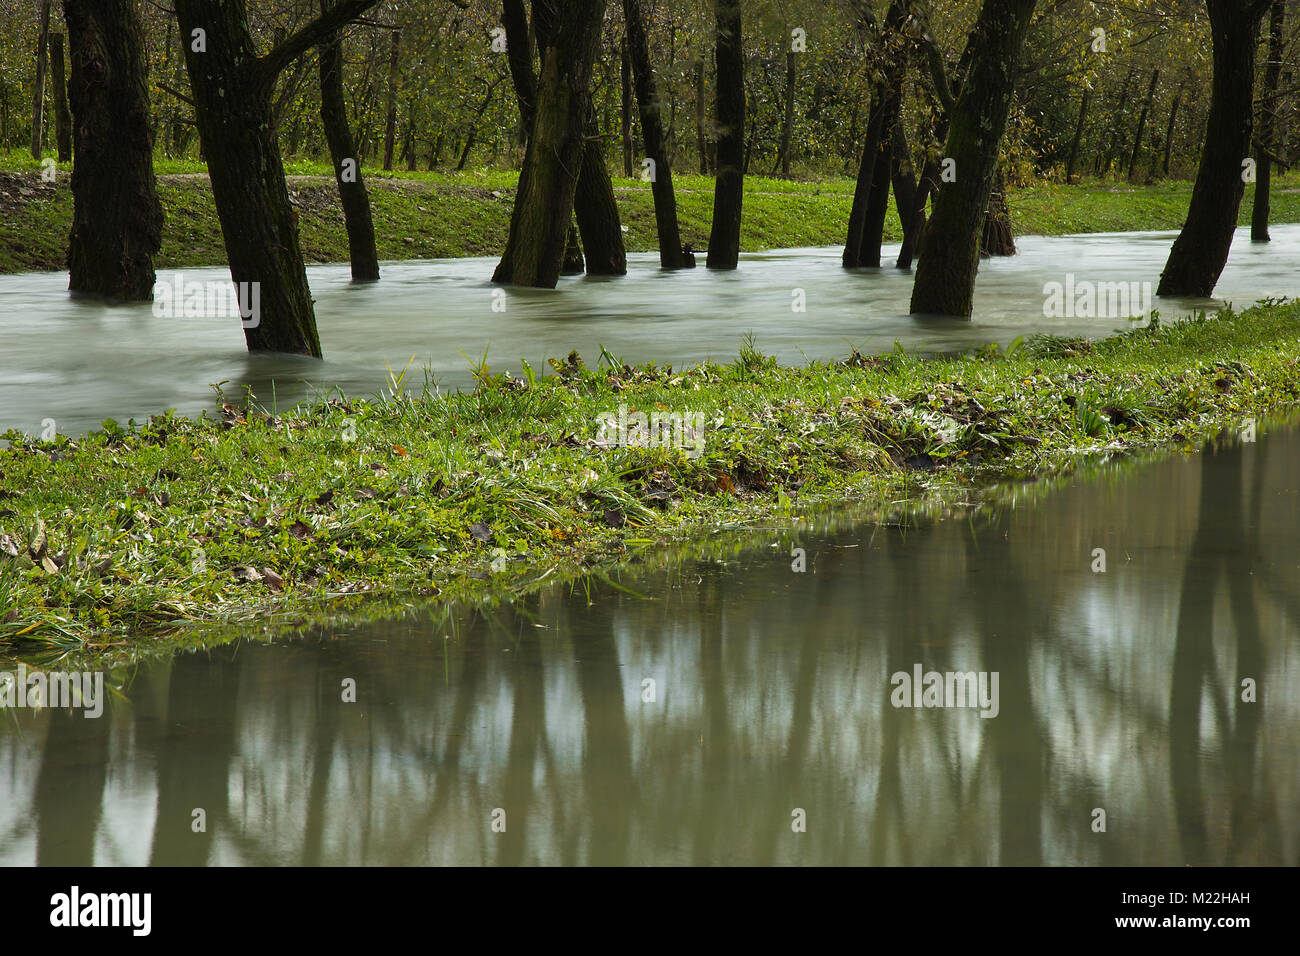 Floods - river overflows its banks and flooded forest and field - Stock Image